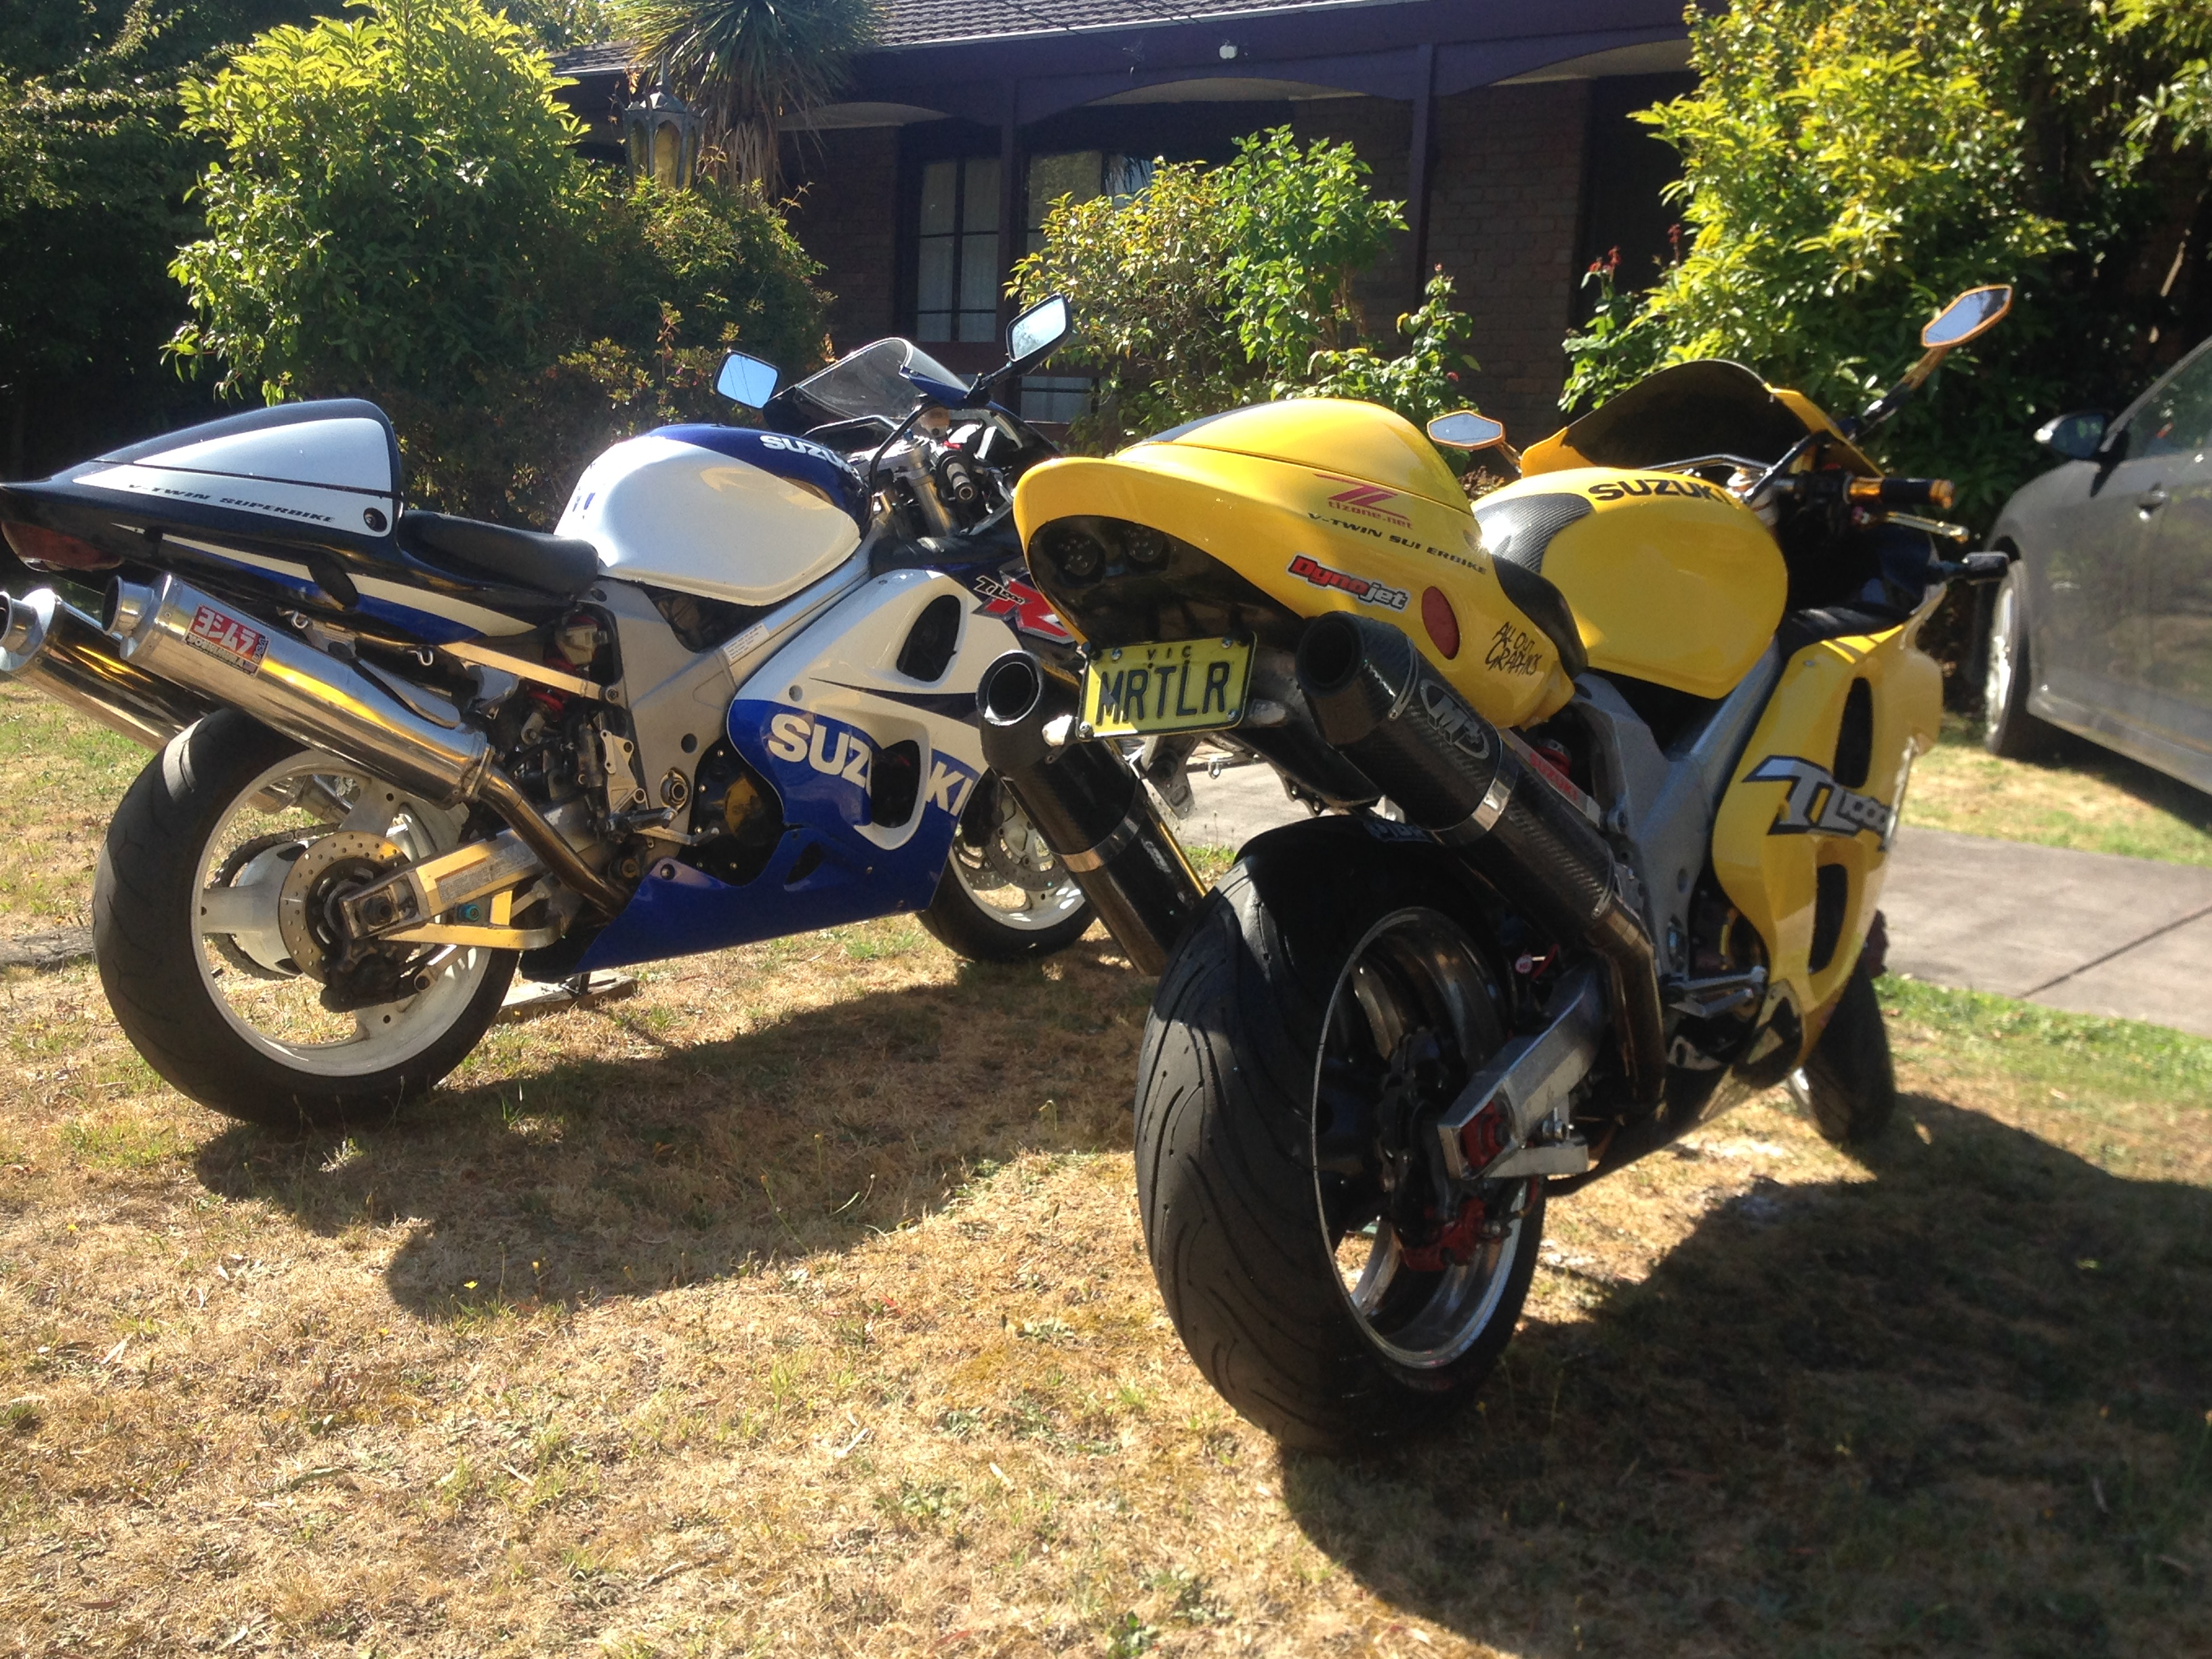 The Yellow TL1000R - A myth?-img_3734.jpg